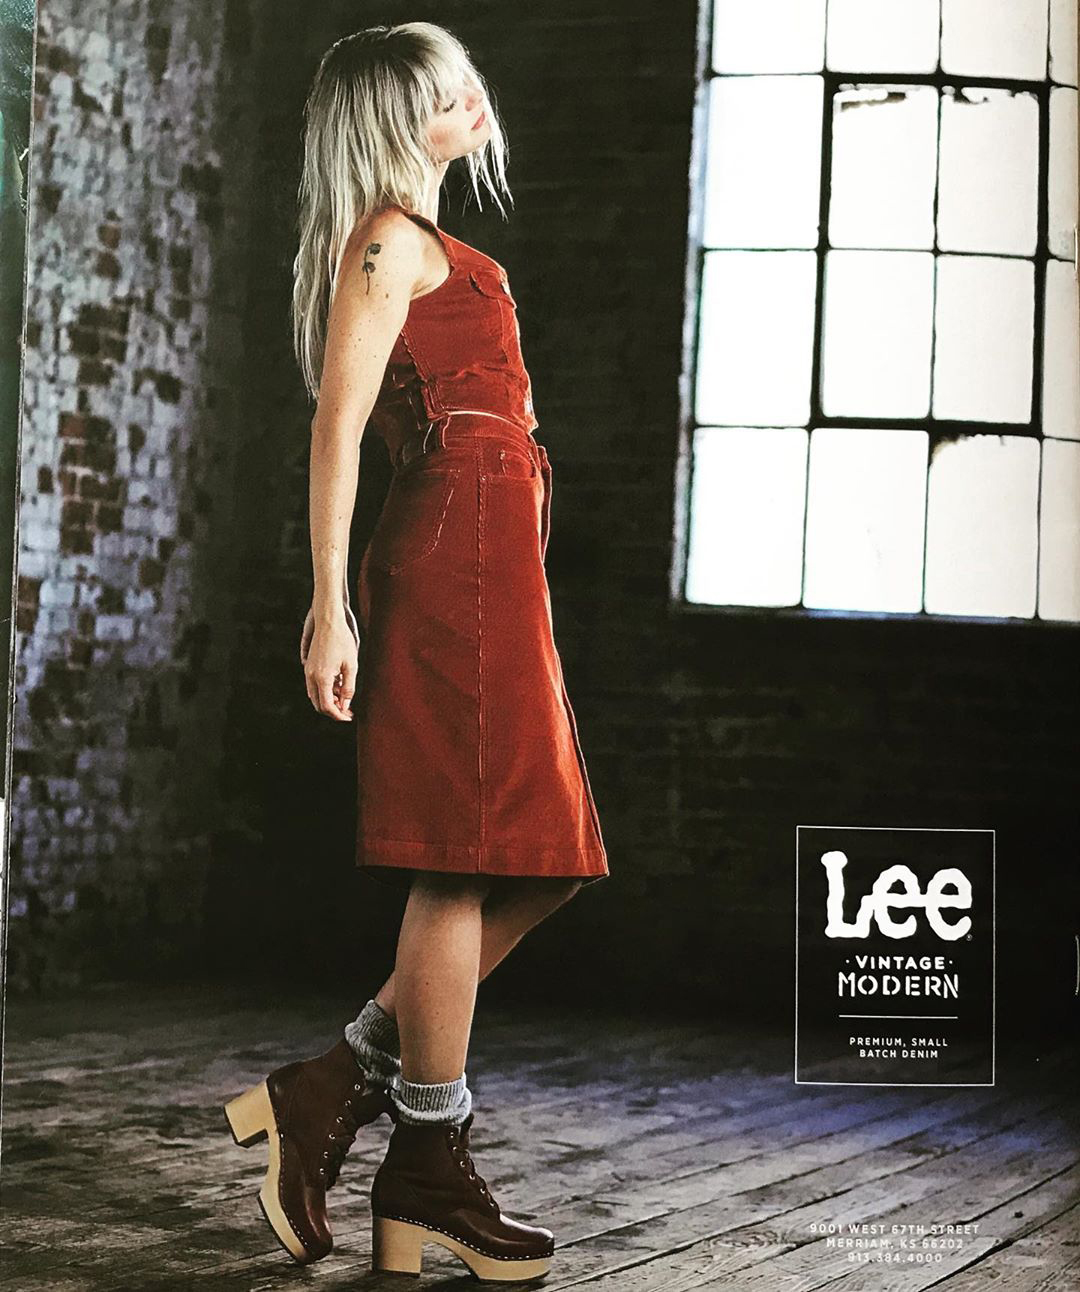 Lee Jeans 7th Row Productions